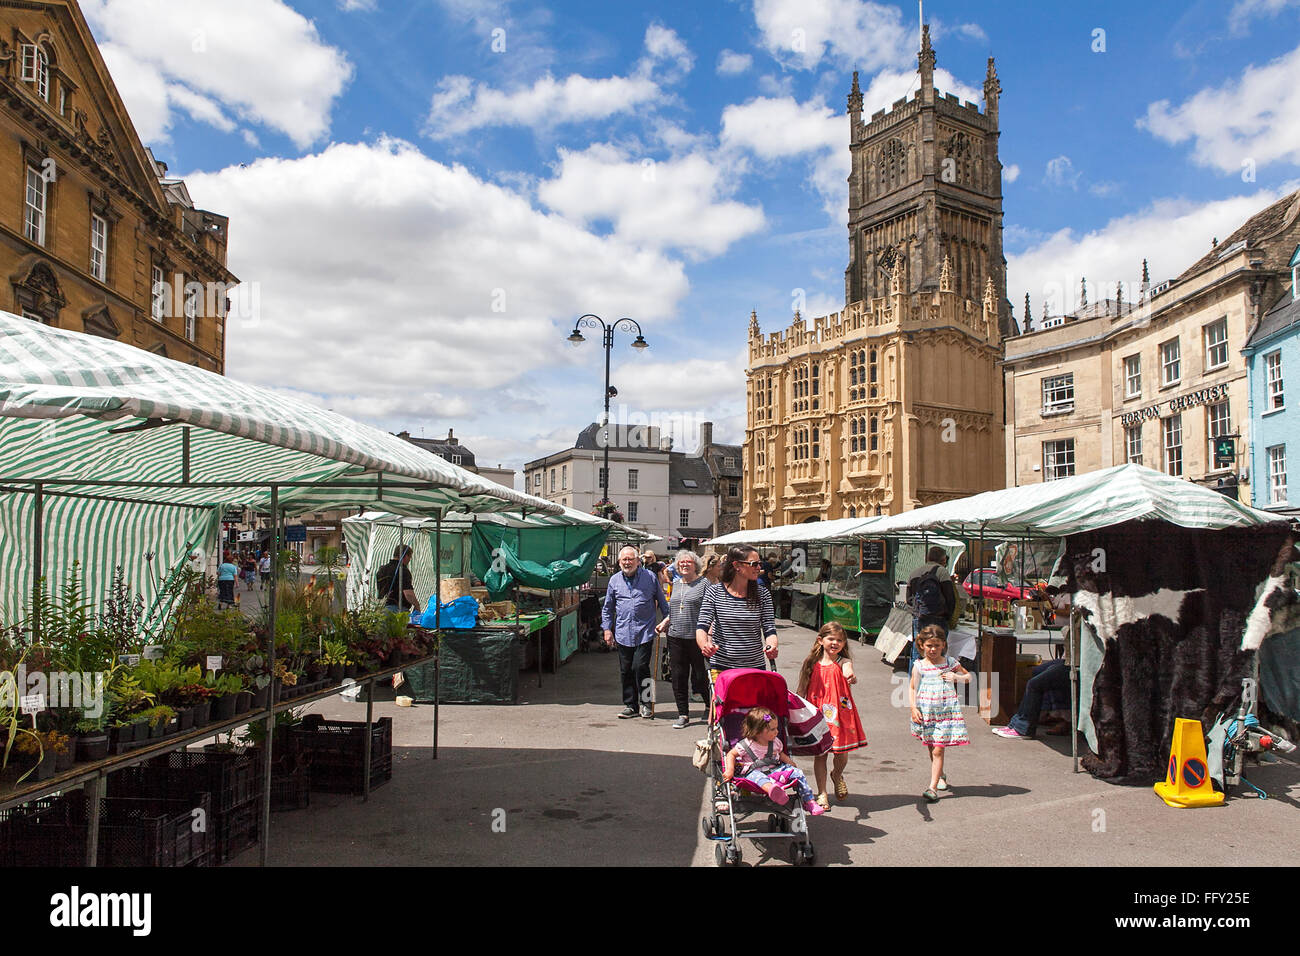 Market town on a sunny day in Cirencester. Gloucestershire. England. UK. Stock Photo